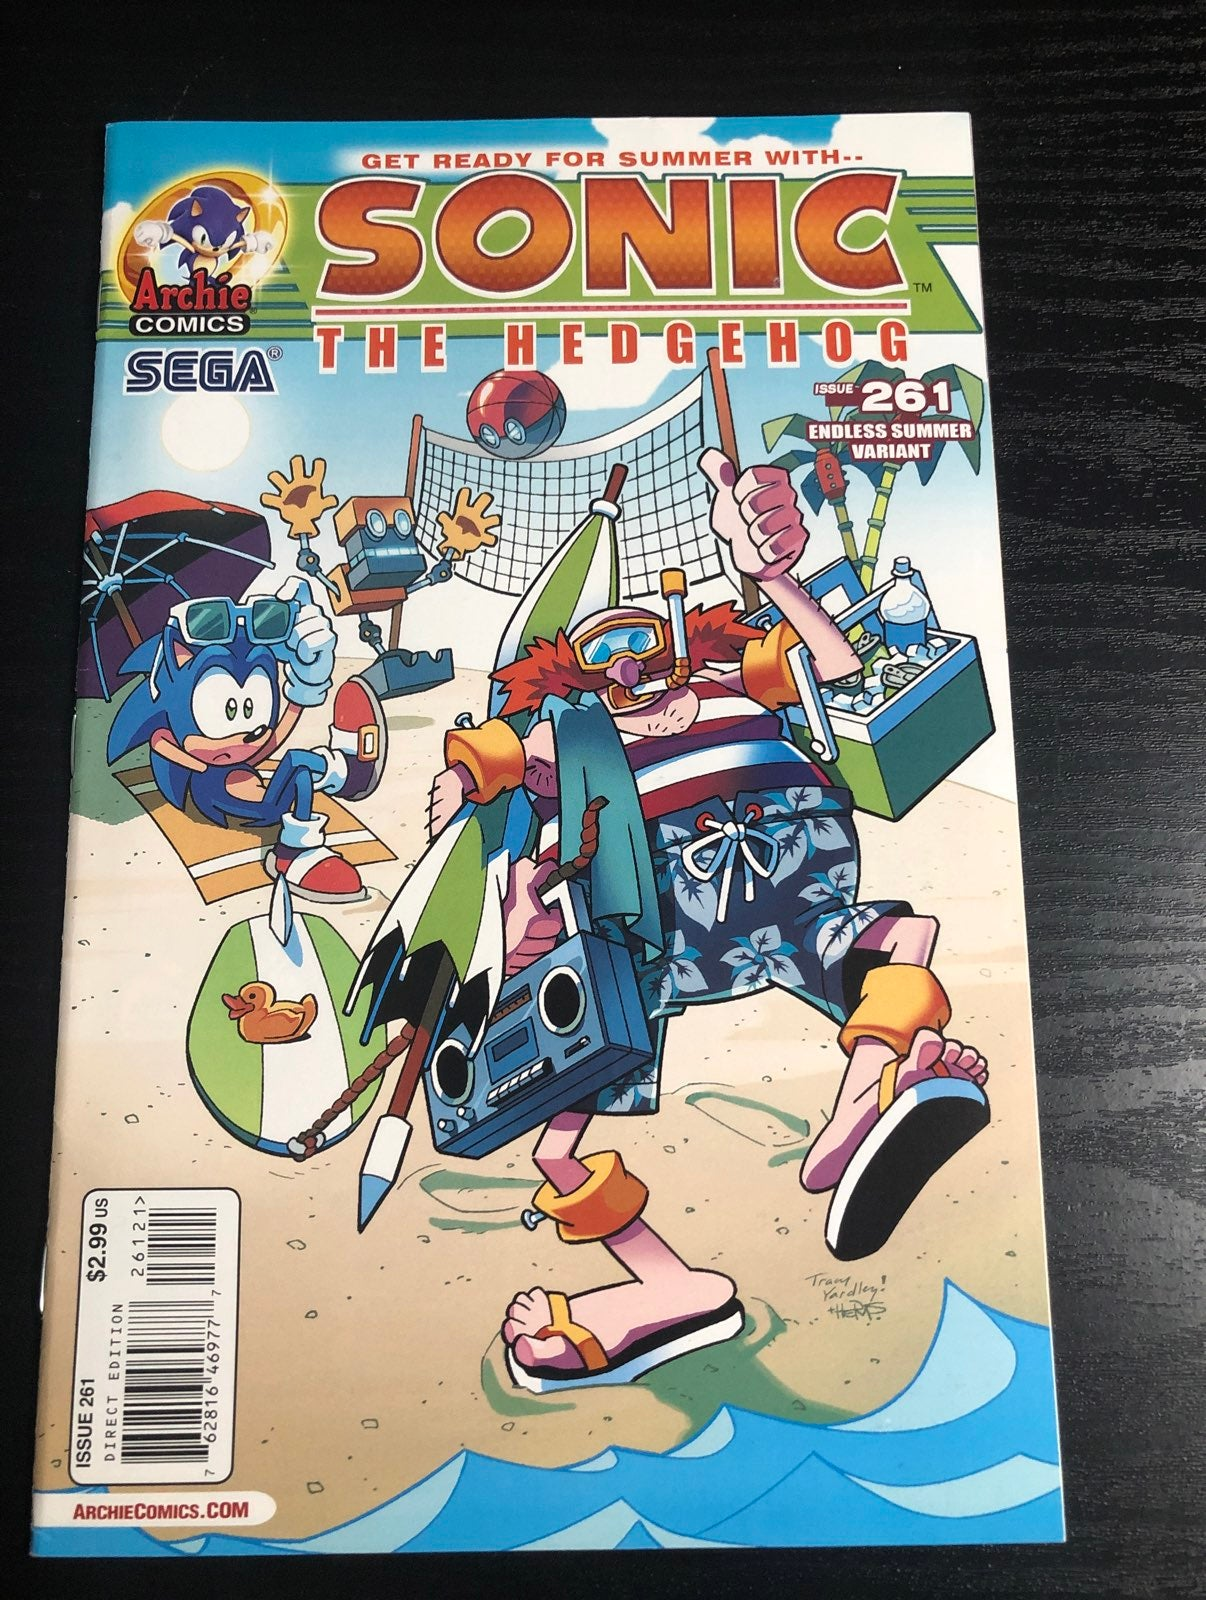 Sonic the Hedgehog comic issue 261